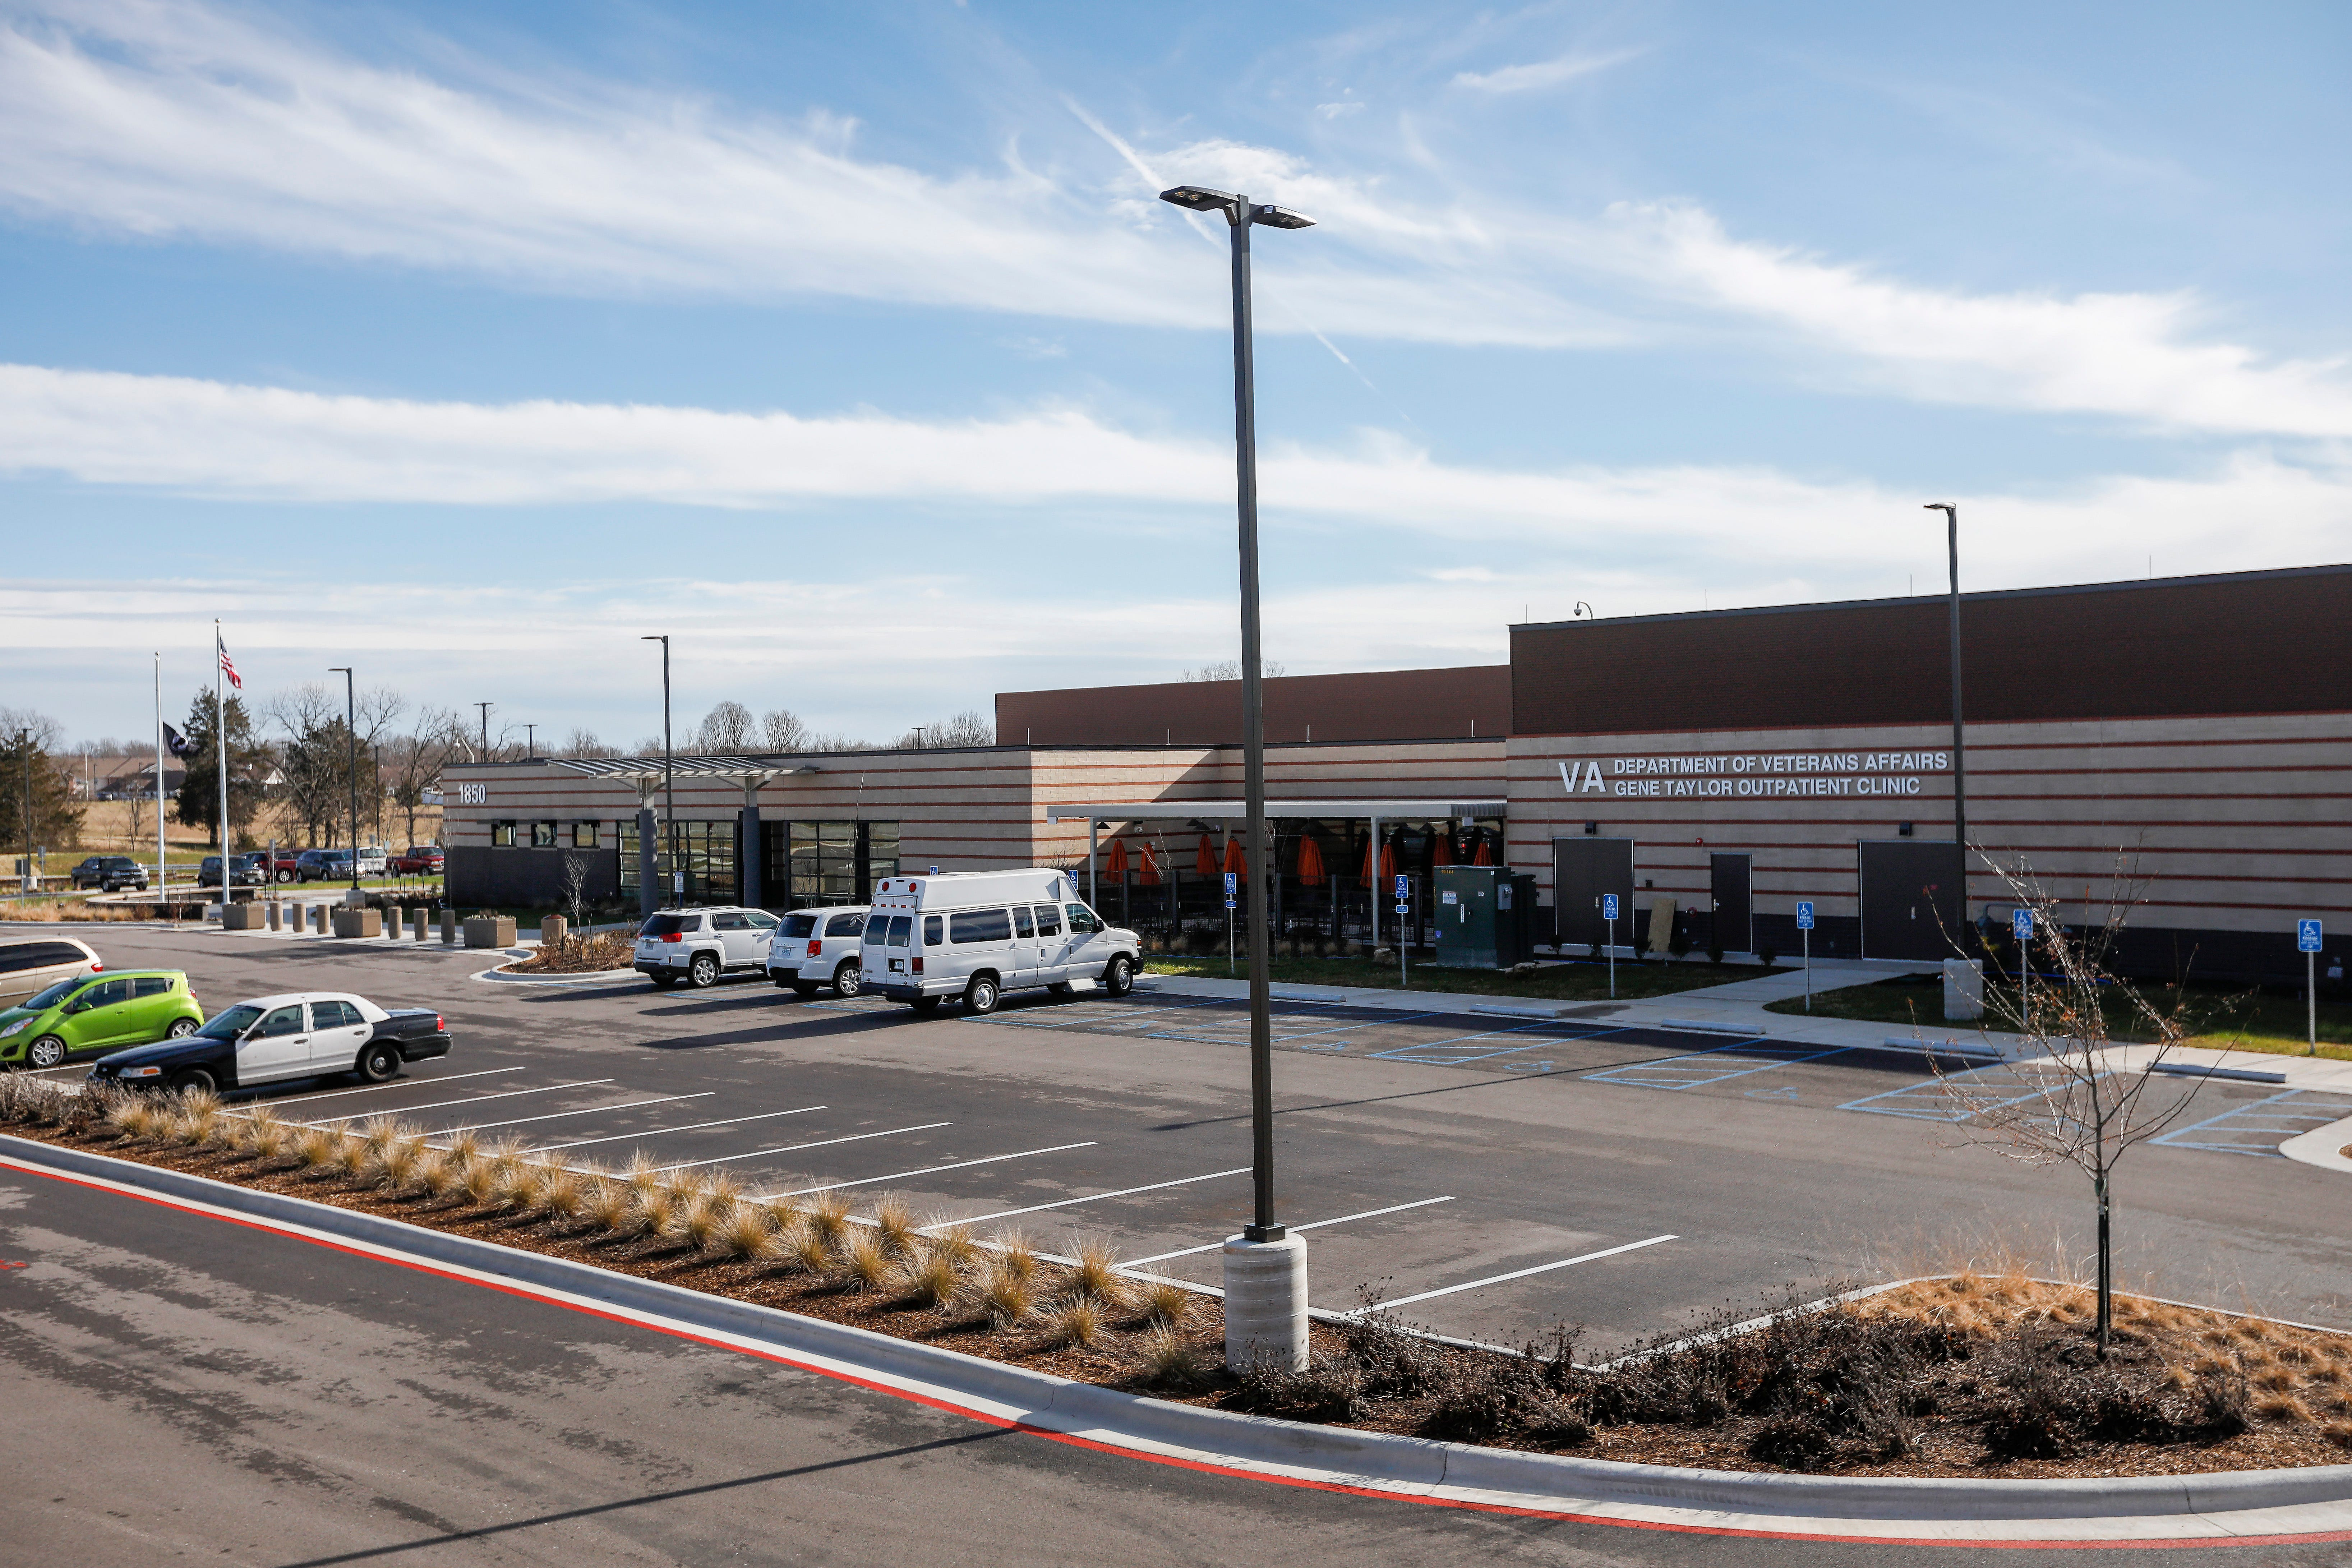 The Gene Taylor Community Based Outpatient Clinic, located at 1850 W. Republic Road, will hold a ribbon cutting and grand opening ceremony on Jan. 24 at 11 a.m.